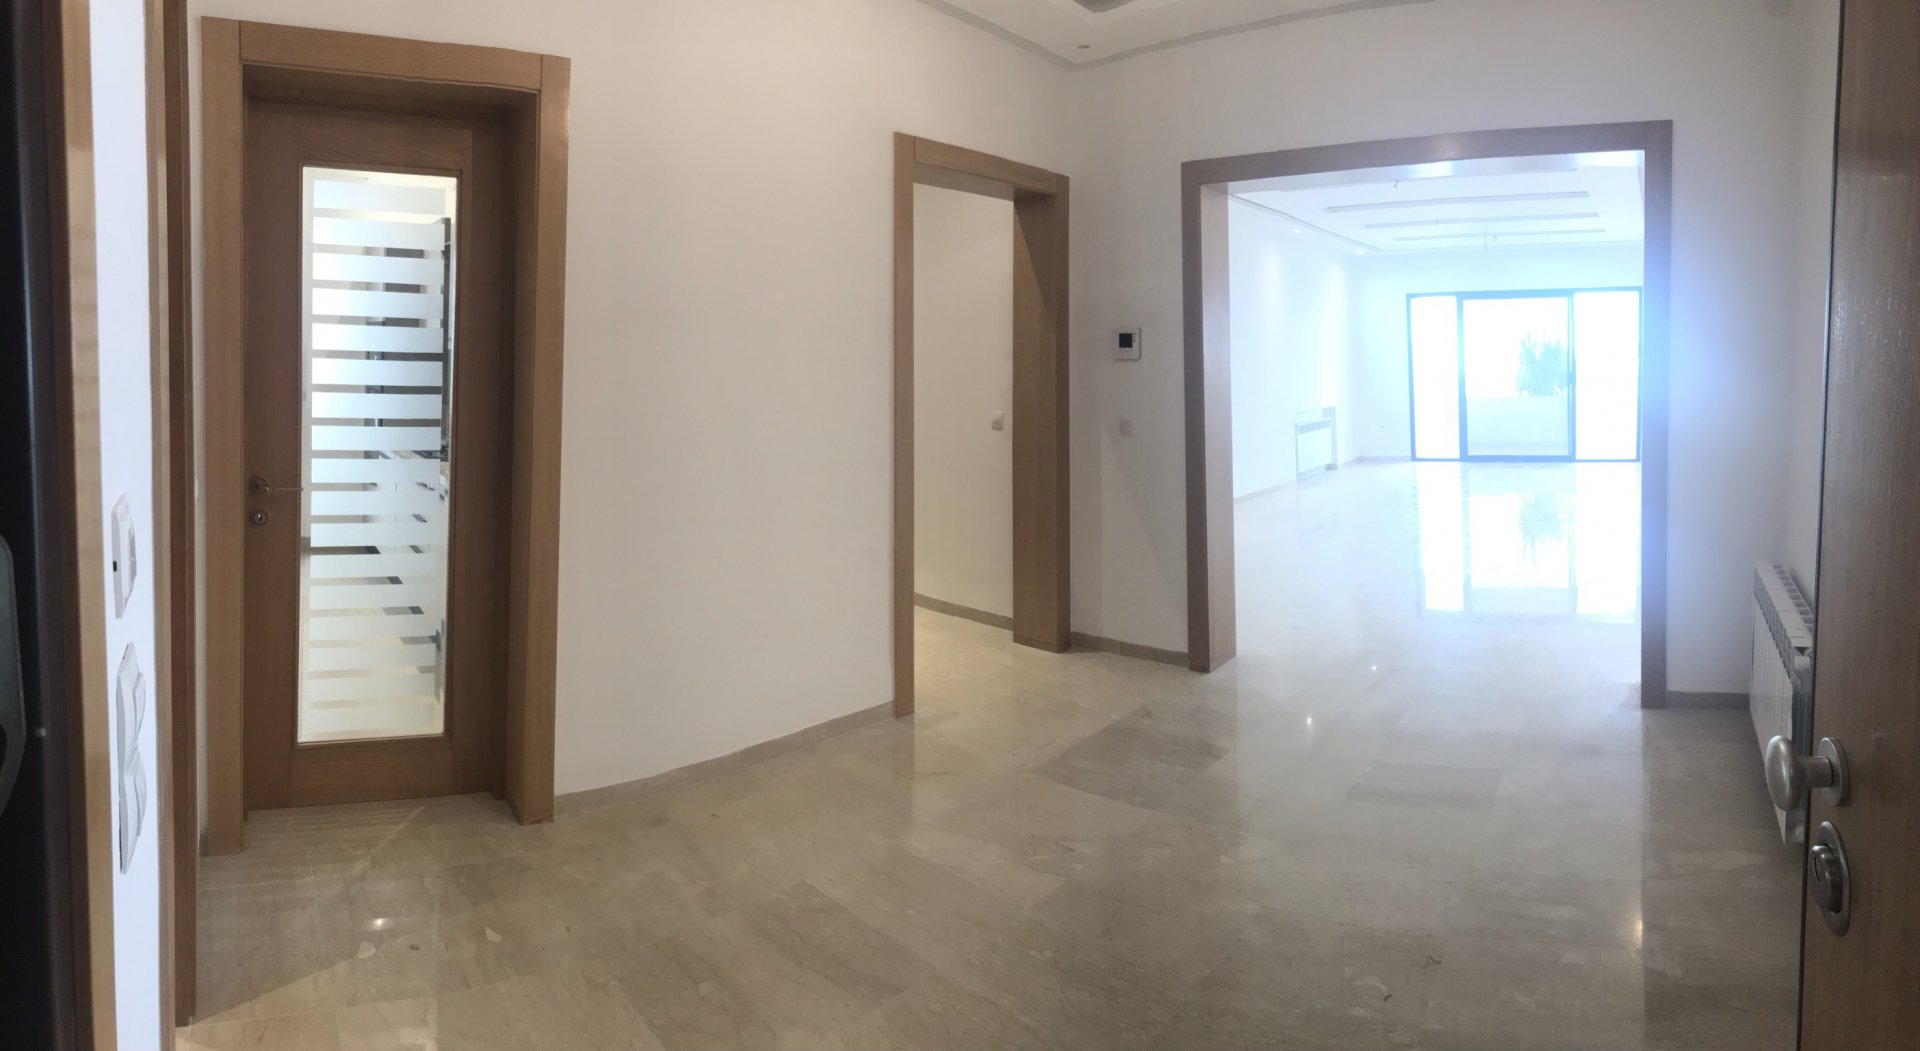 Vente Appartements S+3 Neuf Ain Zaghouan Nord